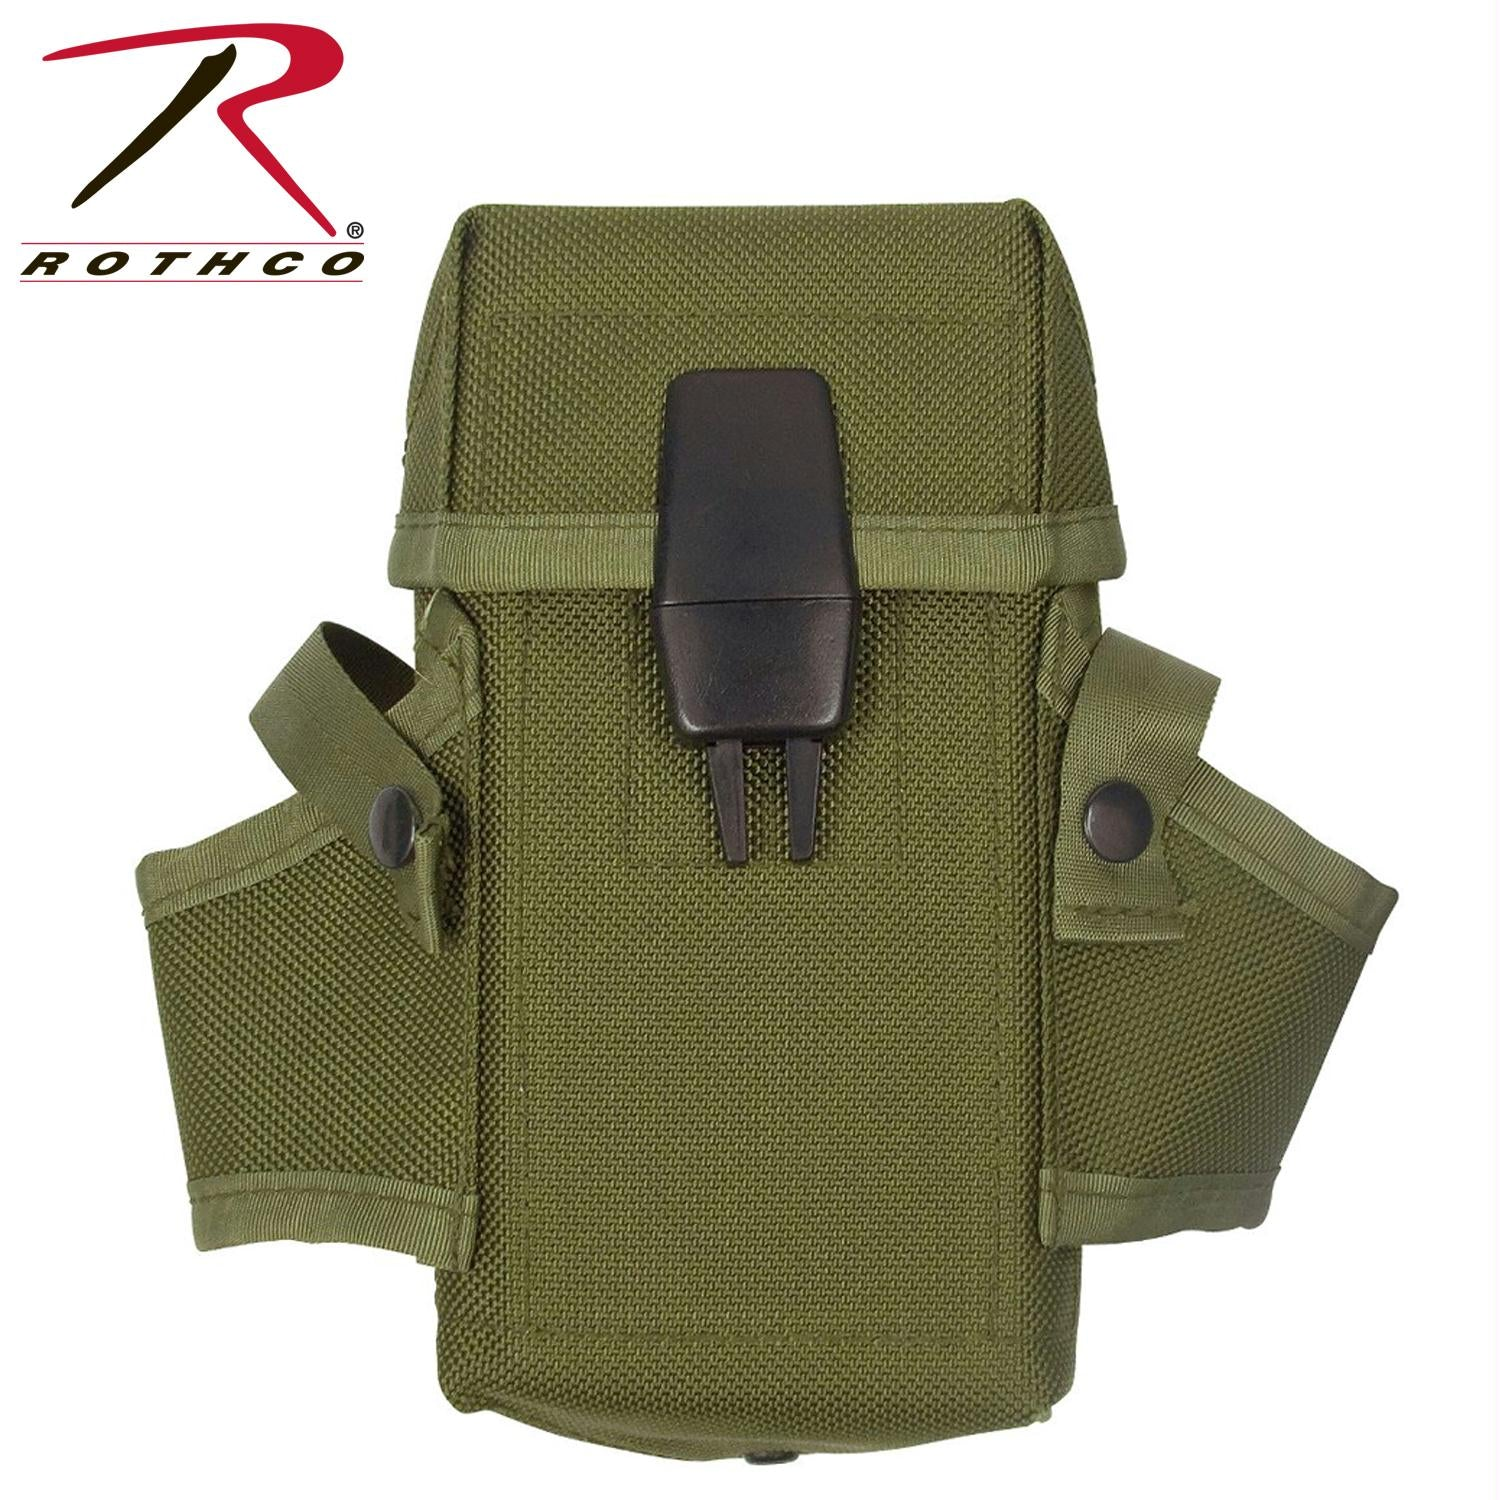 Rothco M-16 Clip Pouches